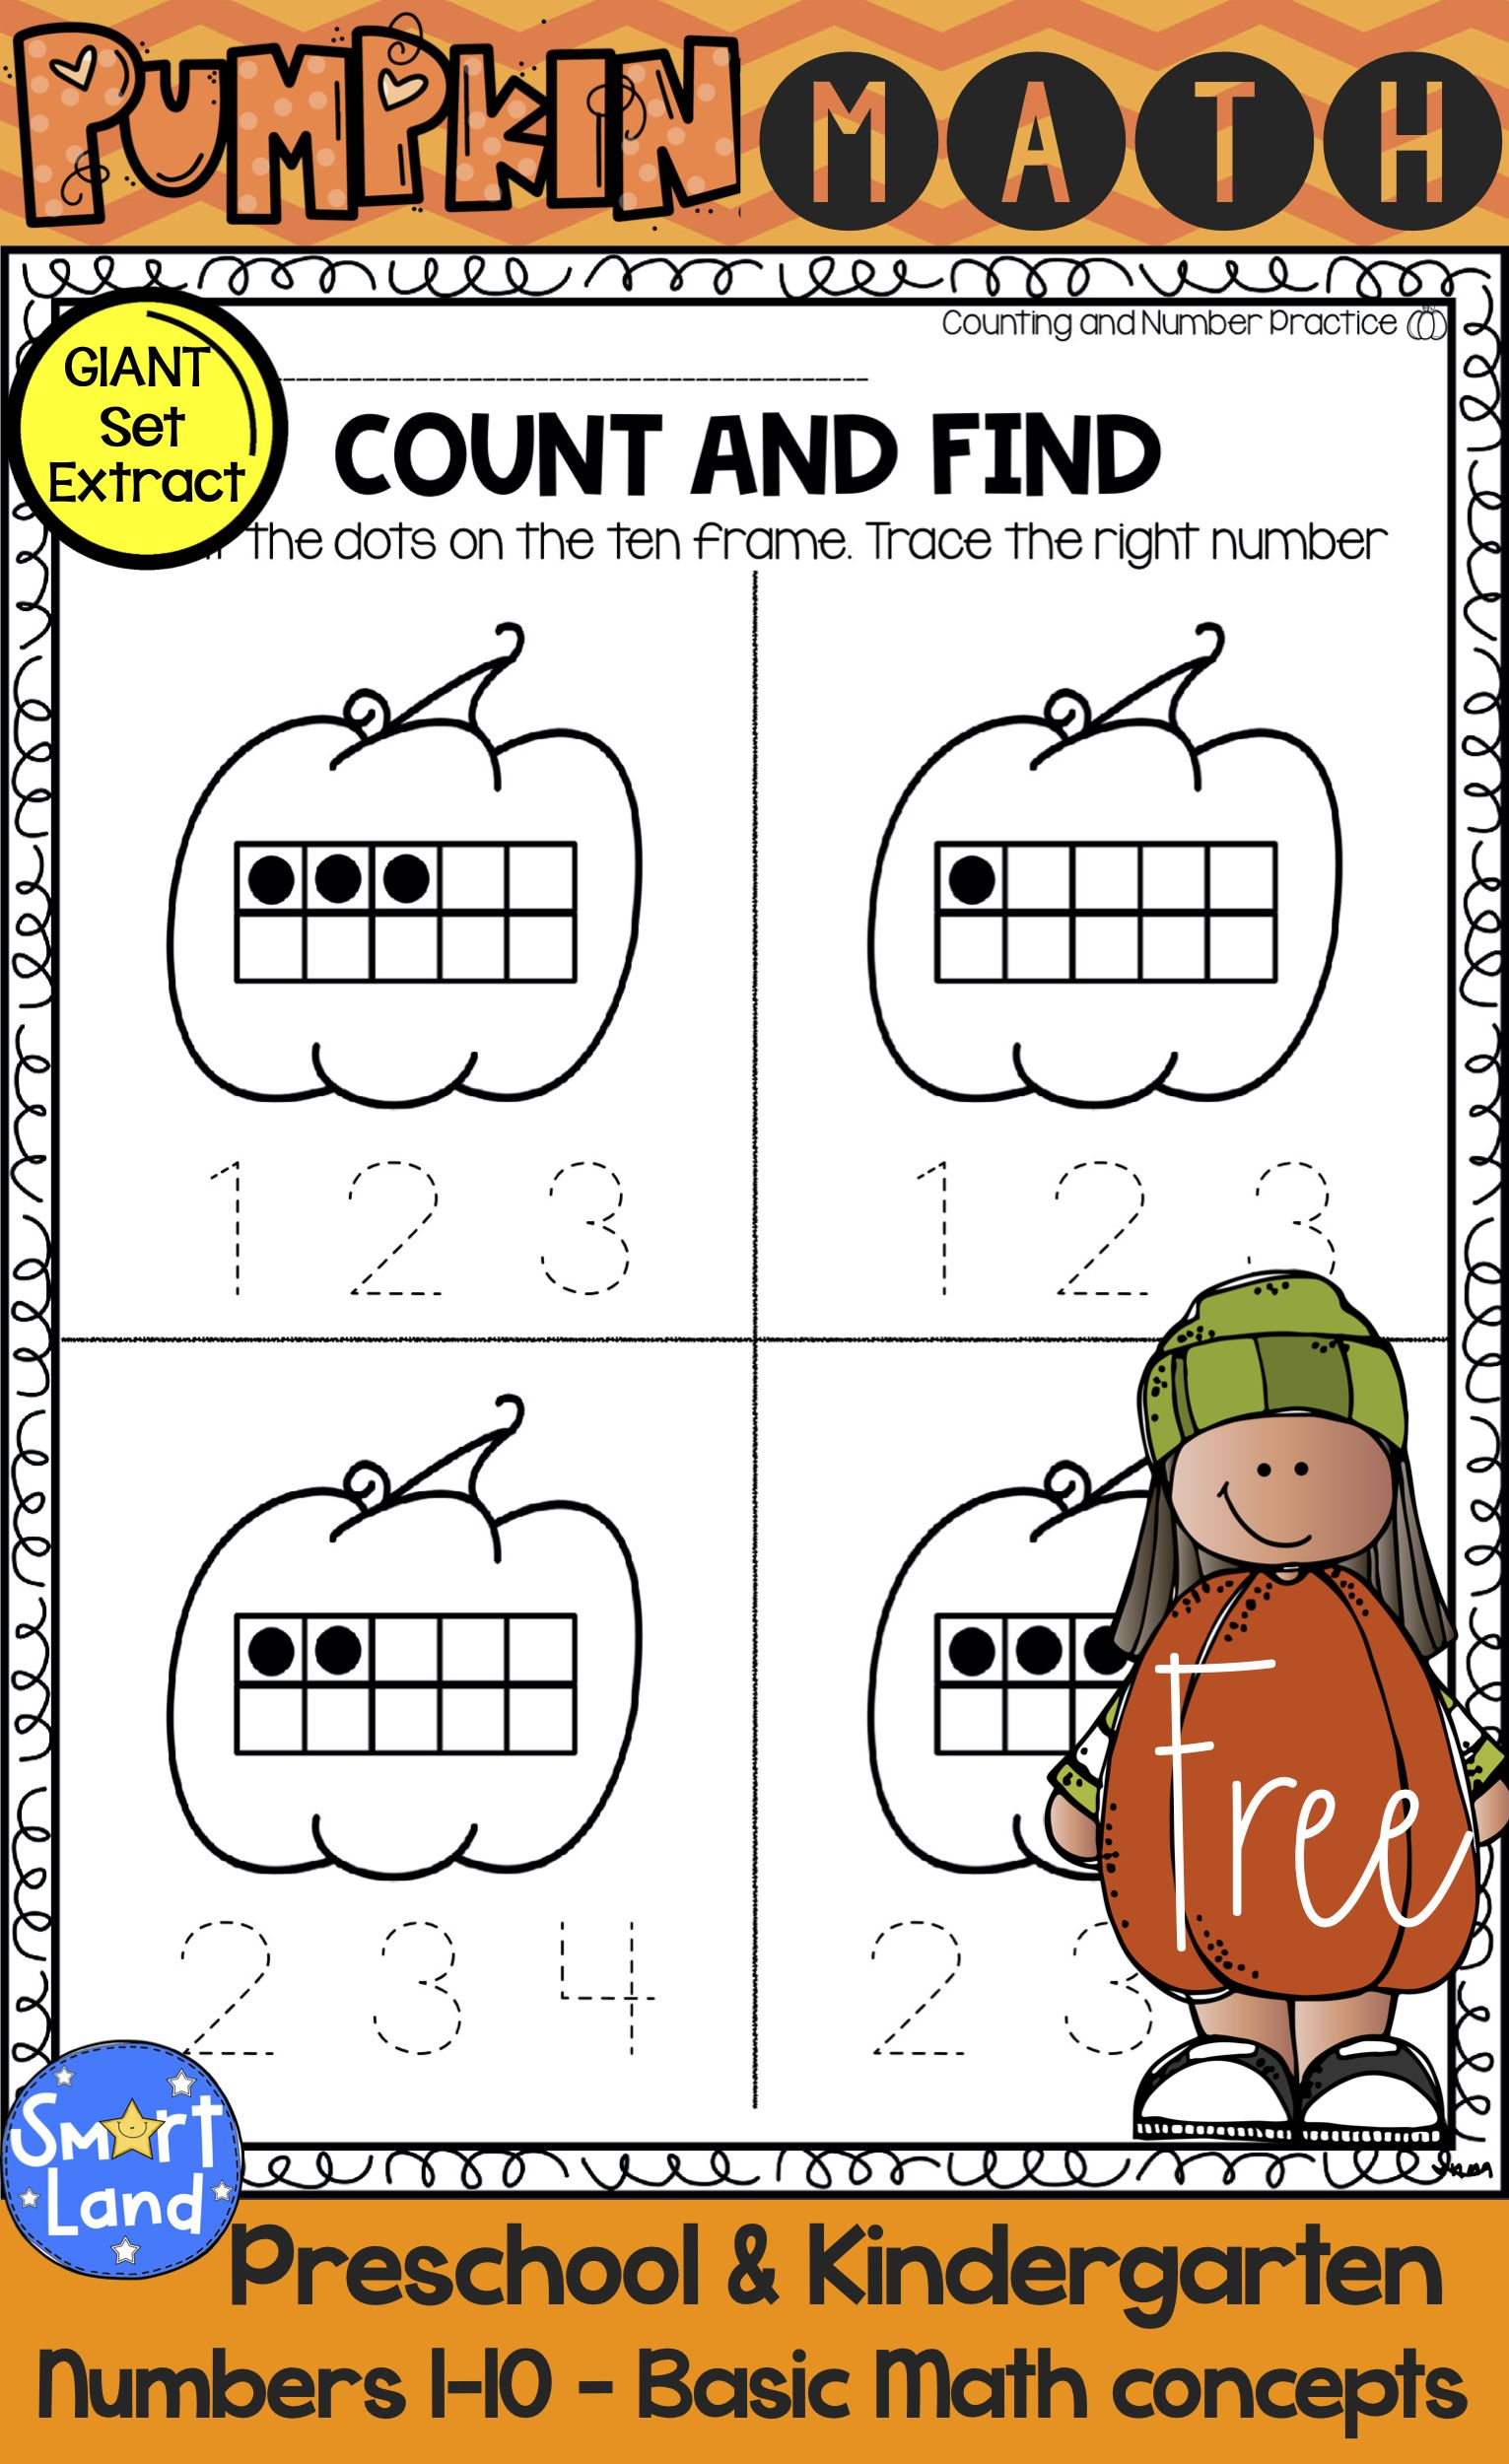 Free Math Practice Worksheets Numbers 1 10 Perfect For Fall And Pumpkin Themes Free Math Practice Pumpkin Math Free Math